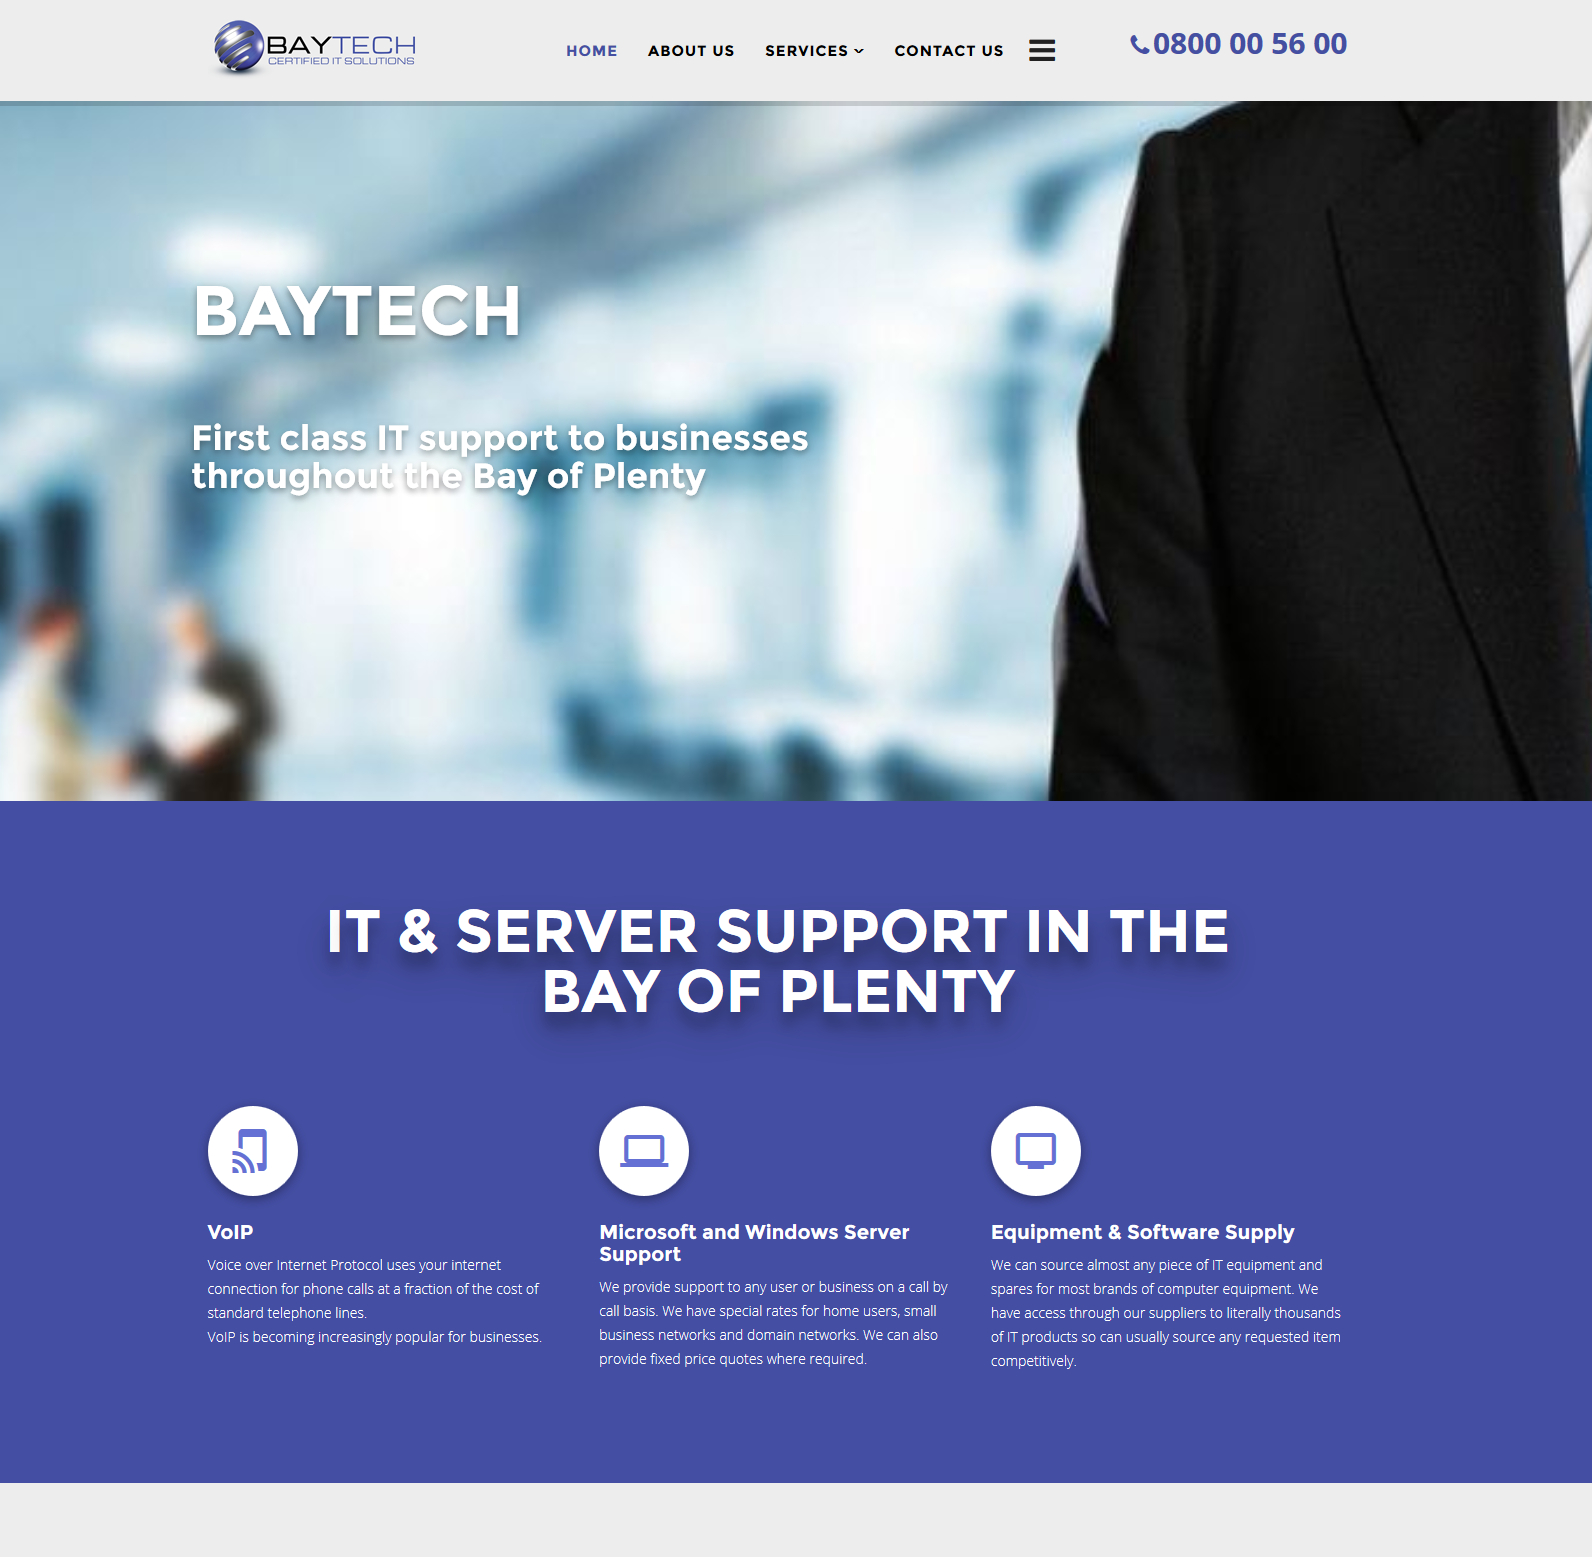 www.baytech.co.nz